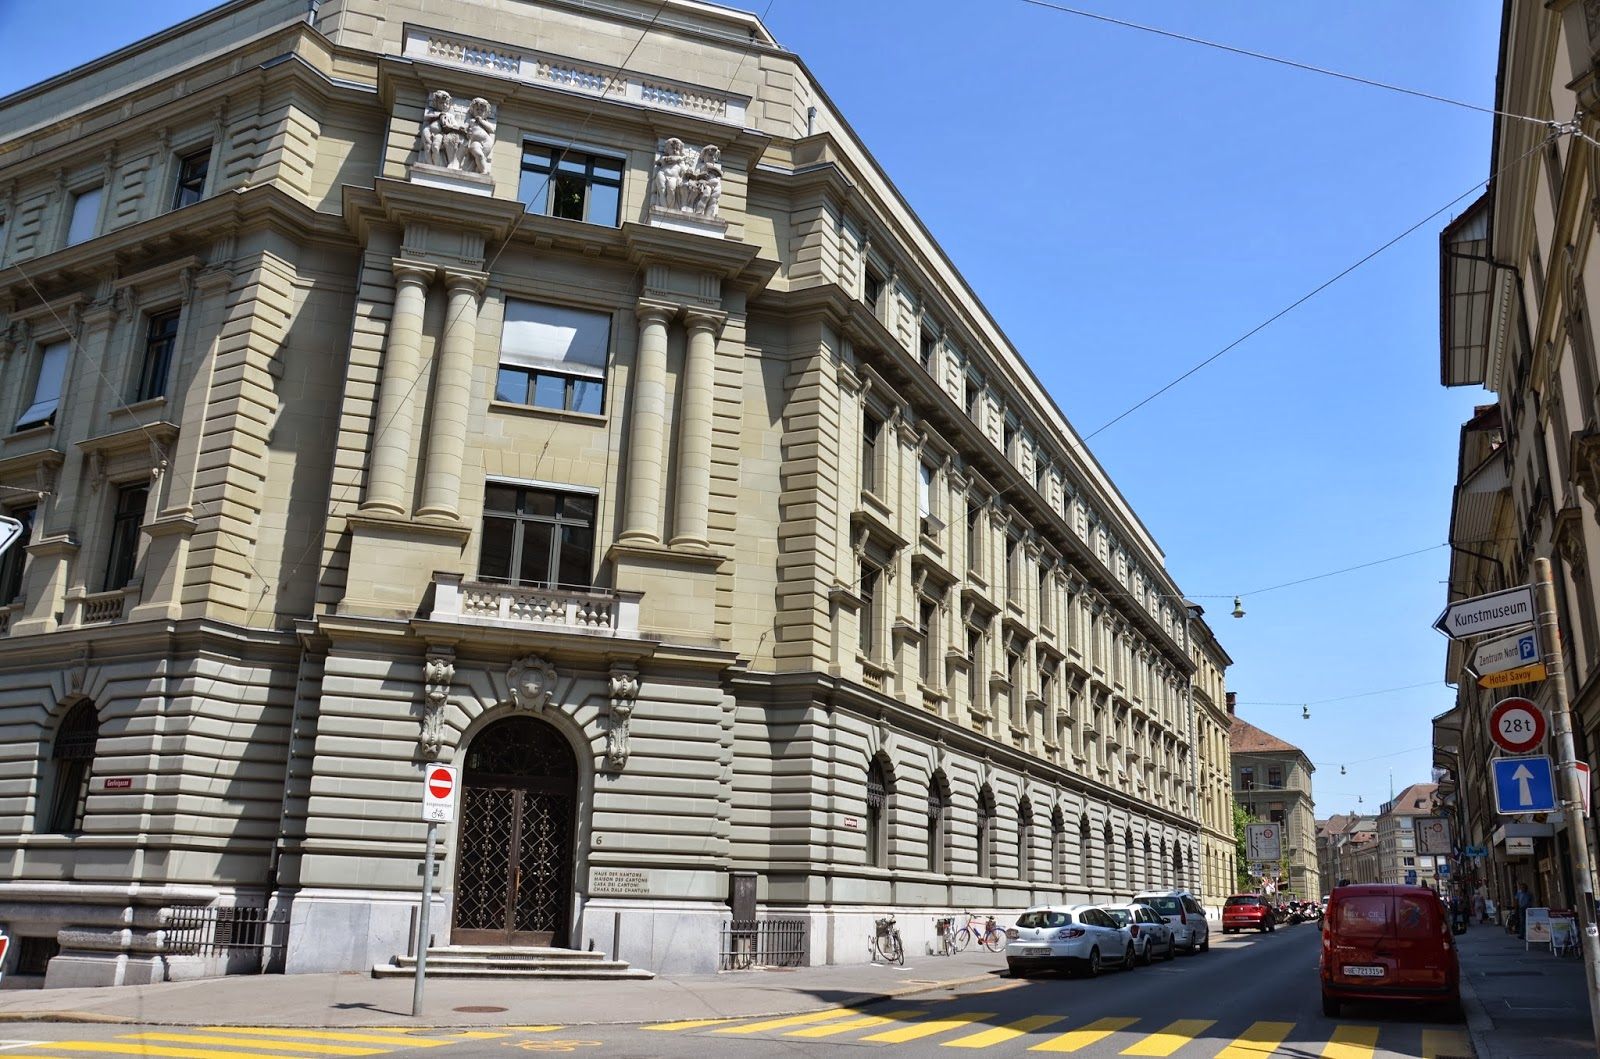 baugh s blog photo essay albert einstein s annus mirabilis  einstein began working here in bern s federal office for intellectual property in 1902